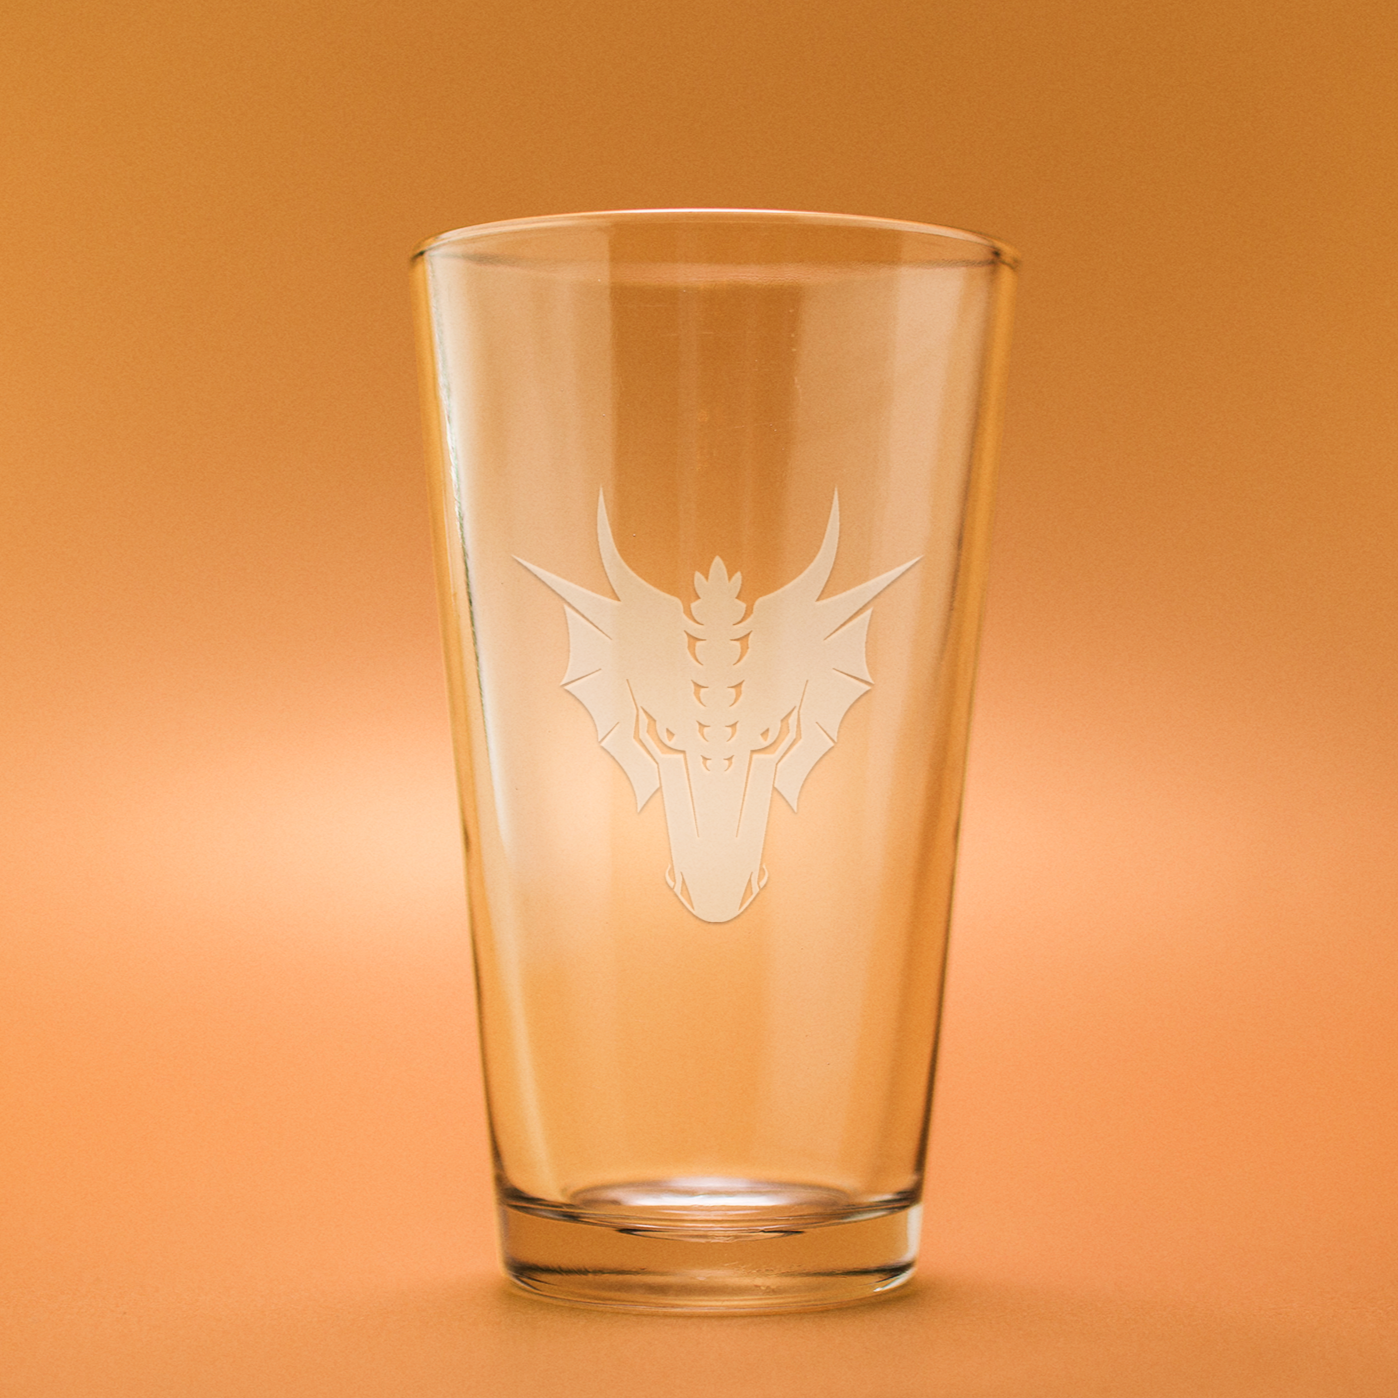 Dragon Head Etched Beer Glass